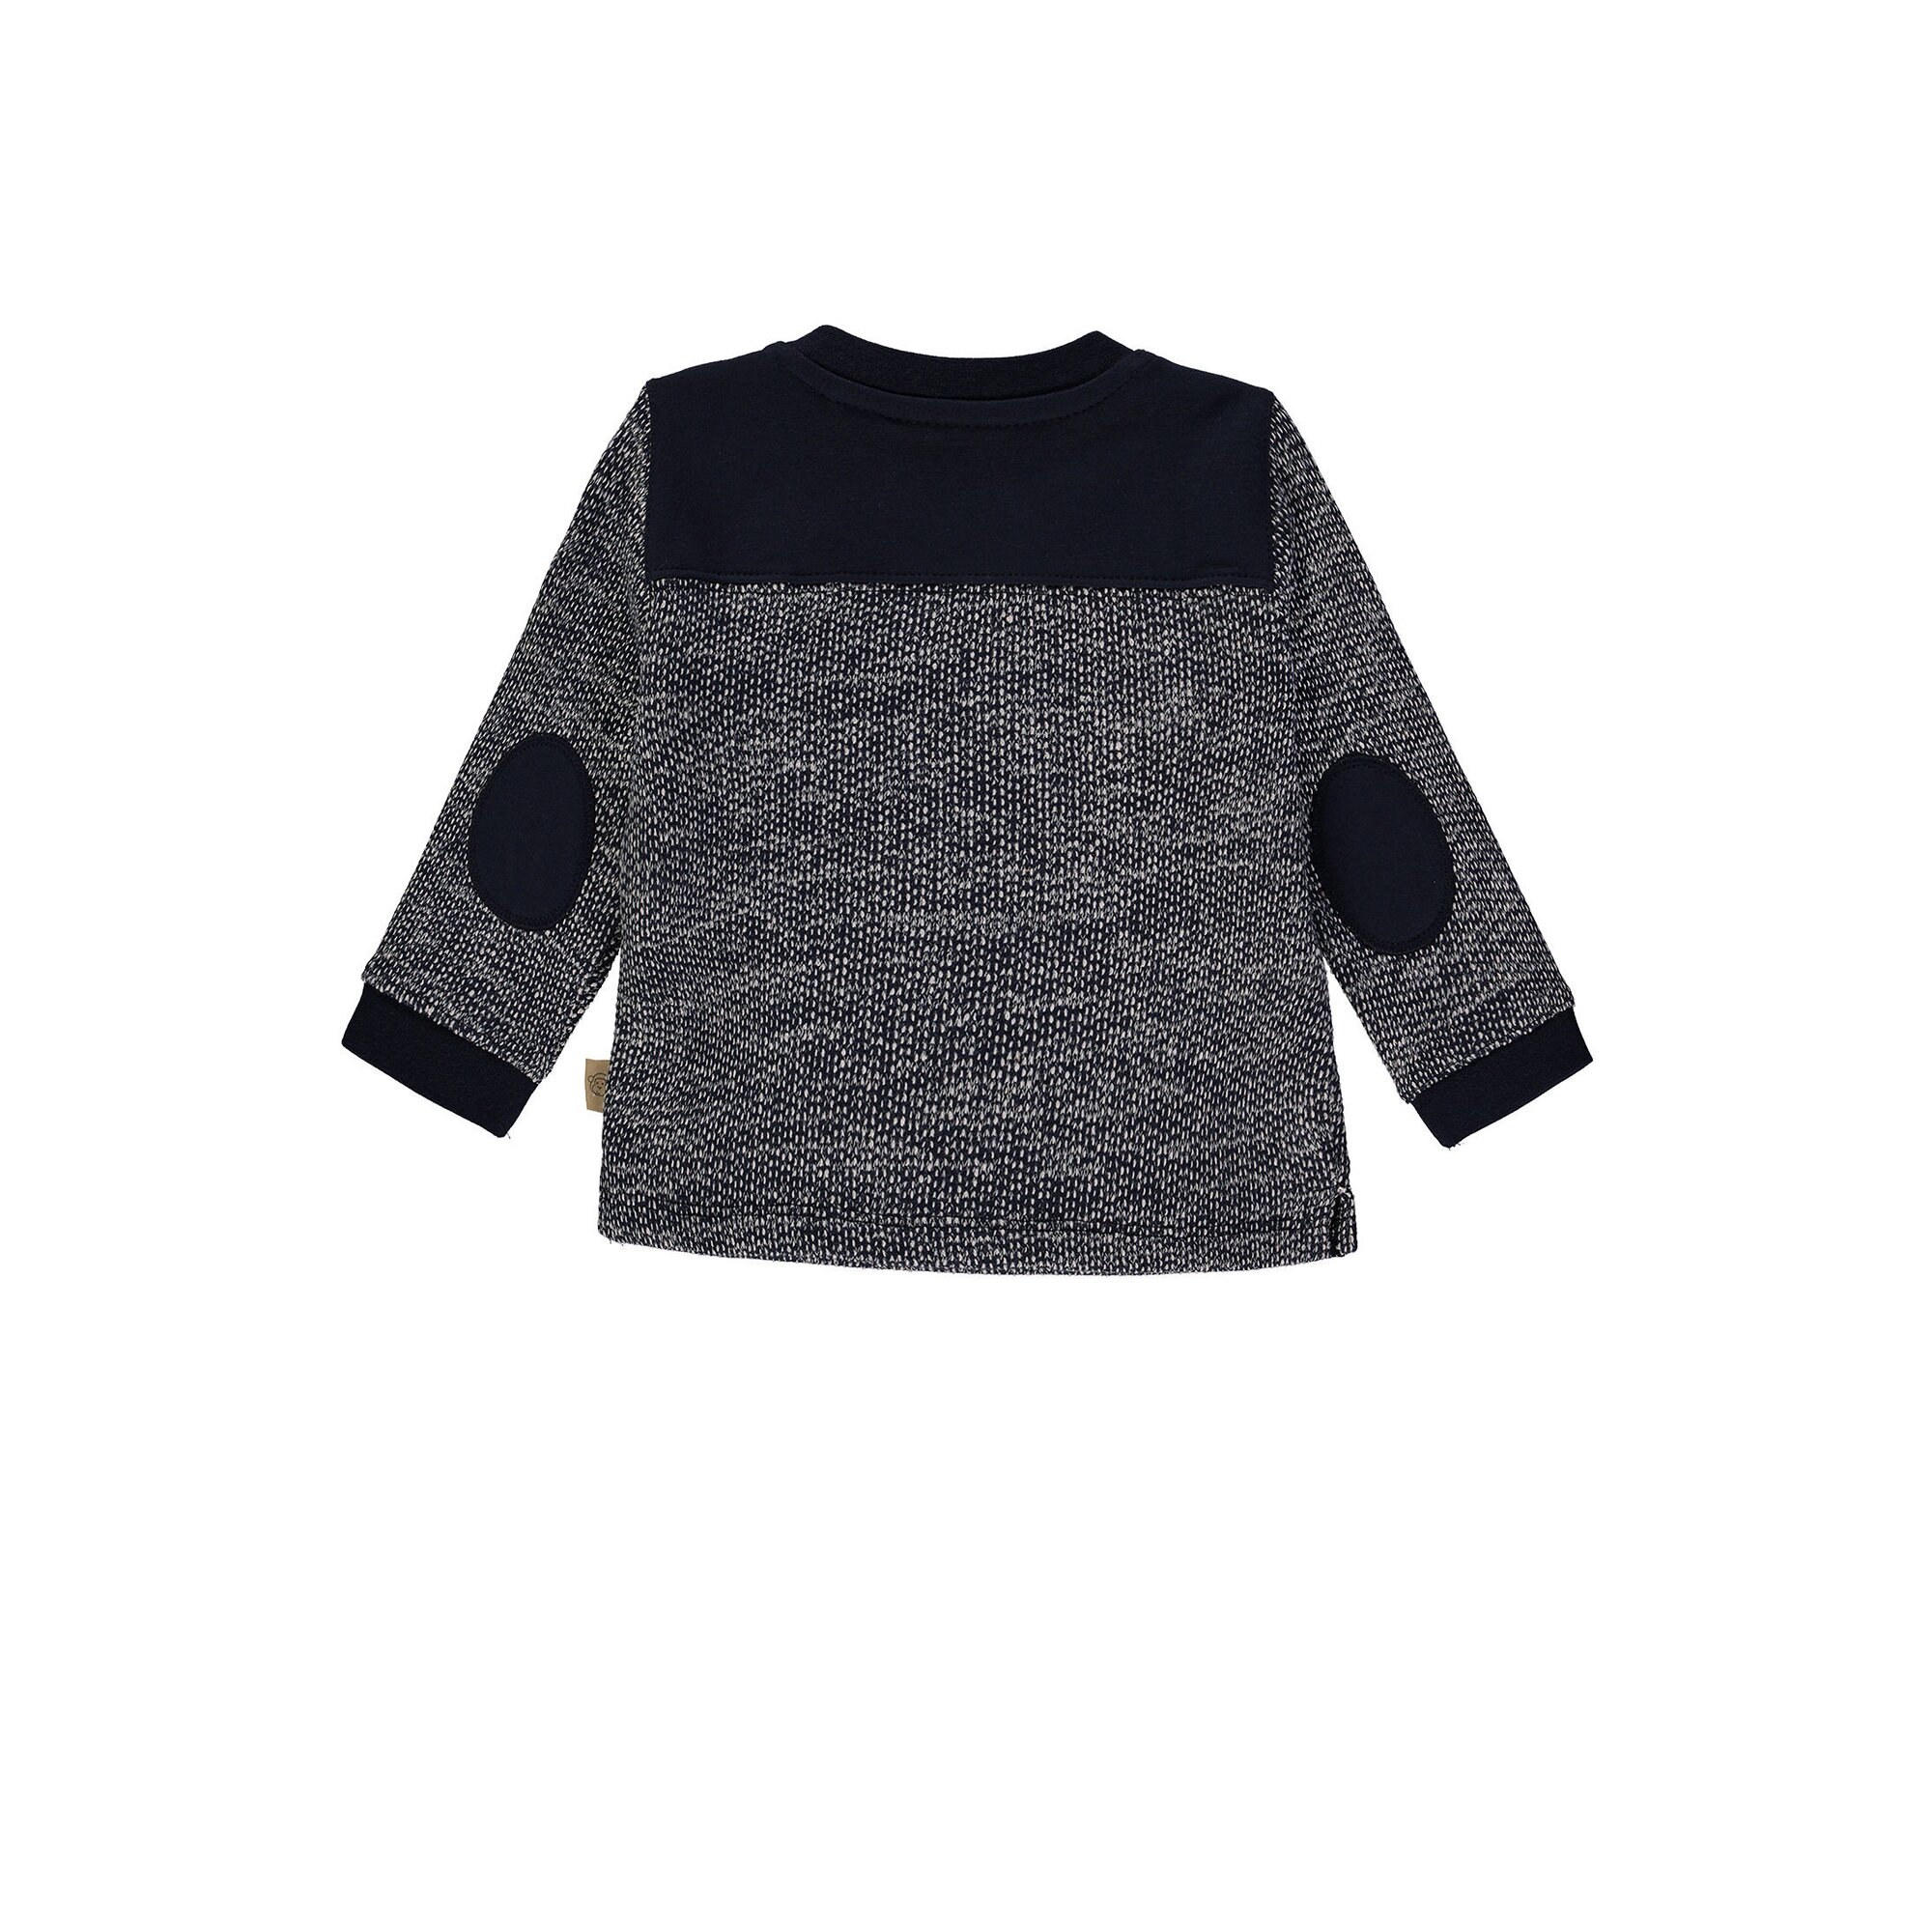 bellybutton-sweatshirt-jungen-material-mix